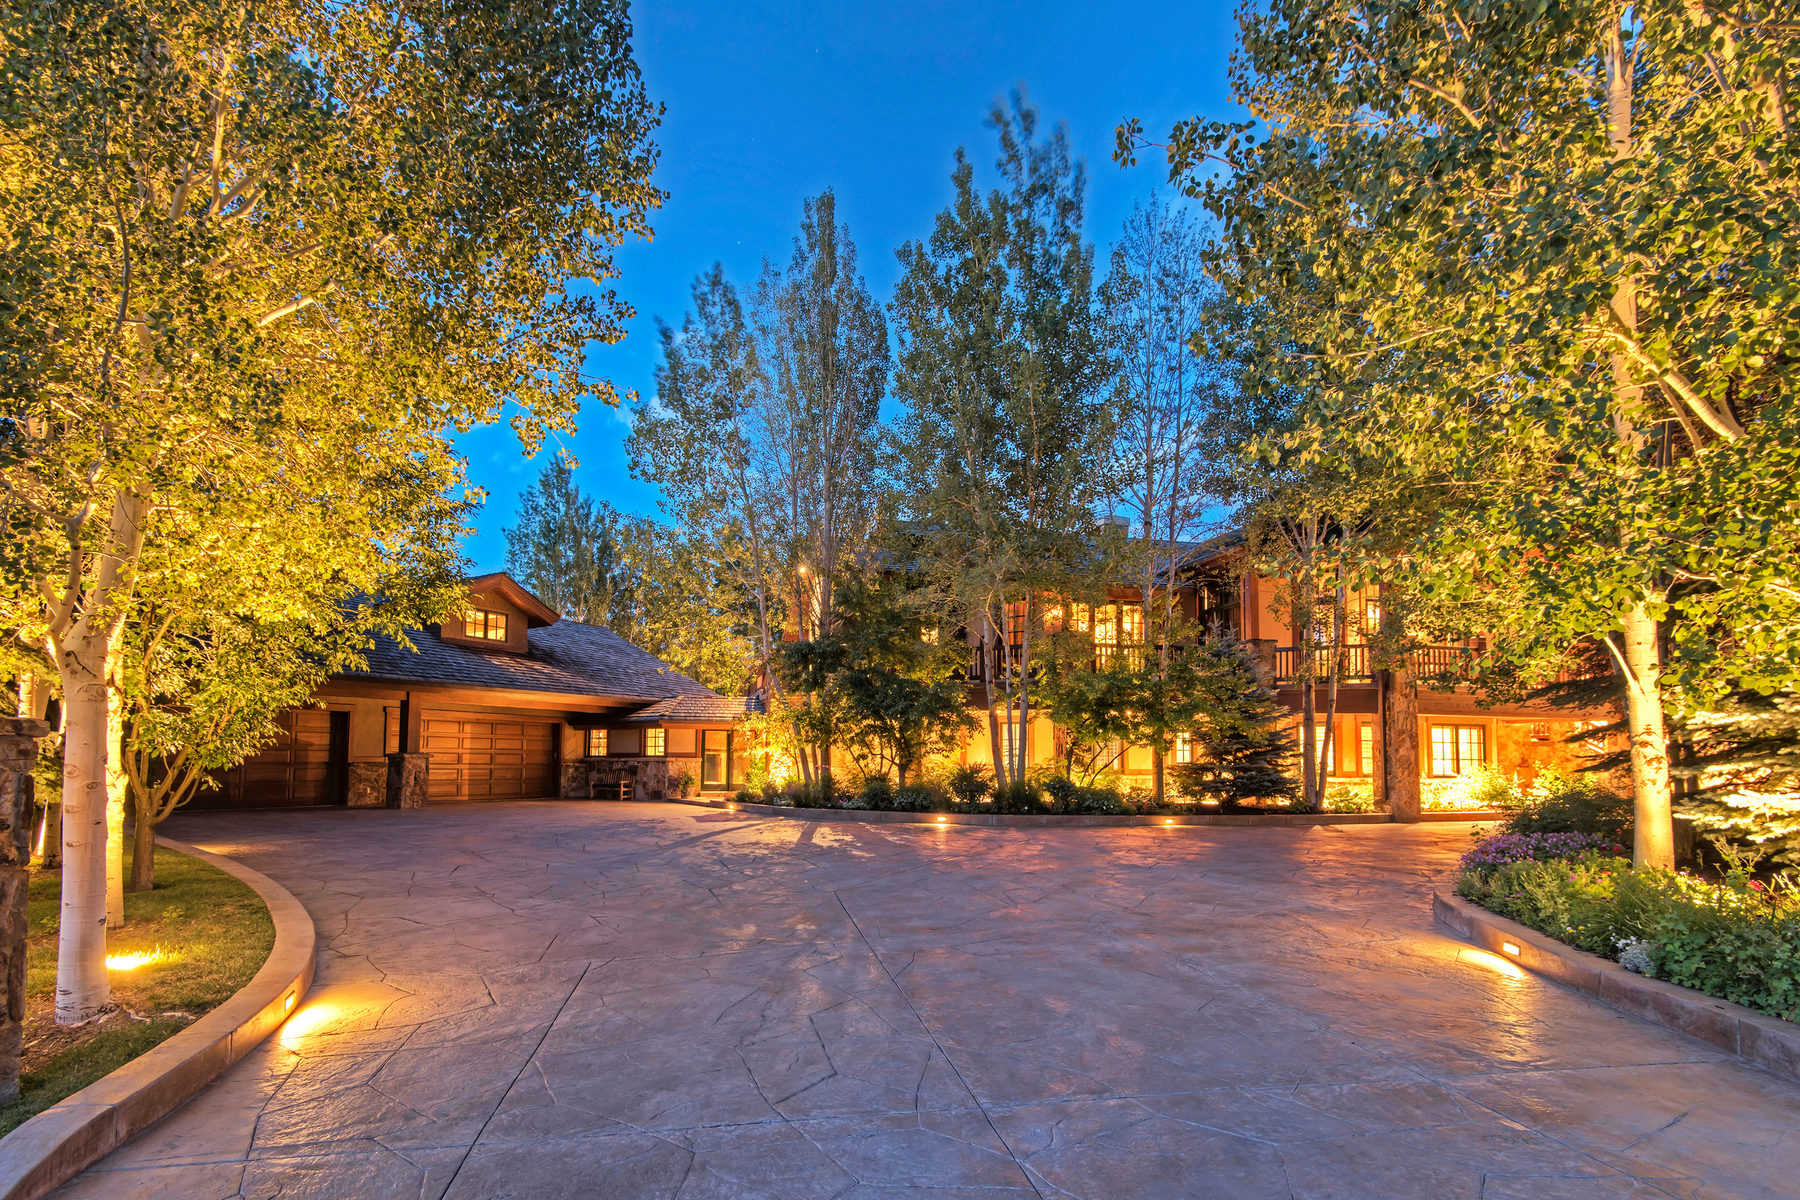 Villa per Vendita alle ore Stunning Park Meadows Estate on over 2.5 Acres 2300 Lucky John Dr Park City, Utah, 84060 Stati Uniti